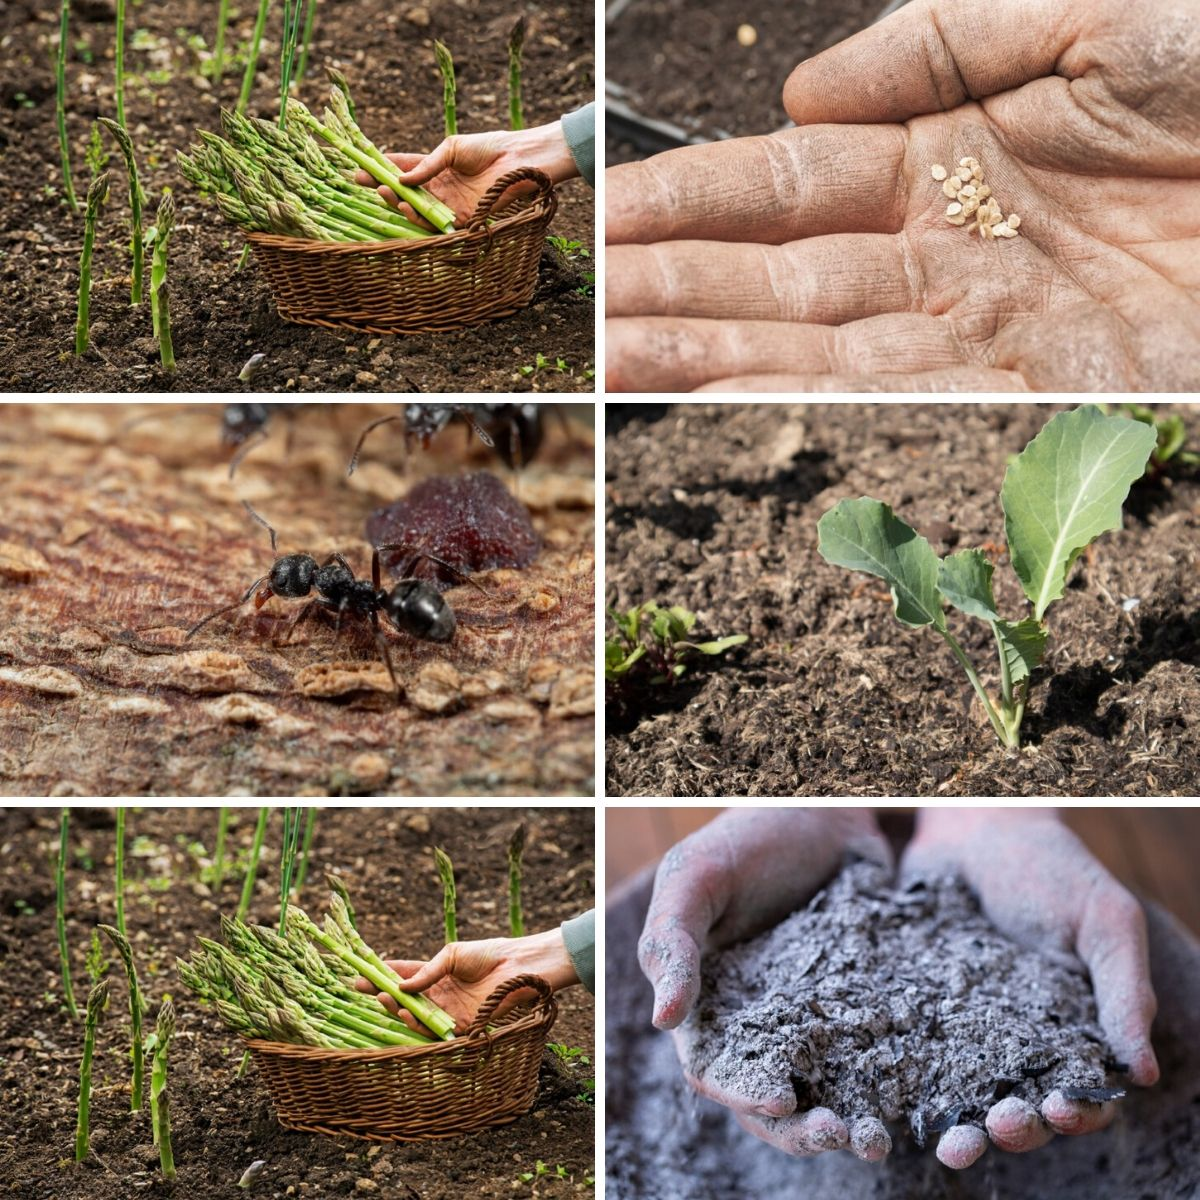 Collage photo featuring various uses for wood ash in the garden